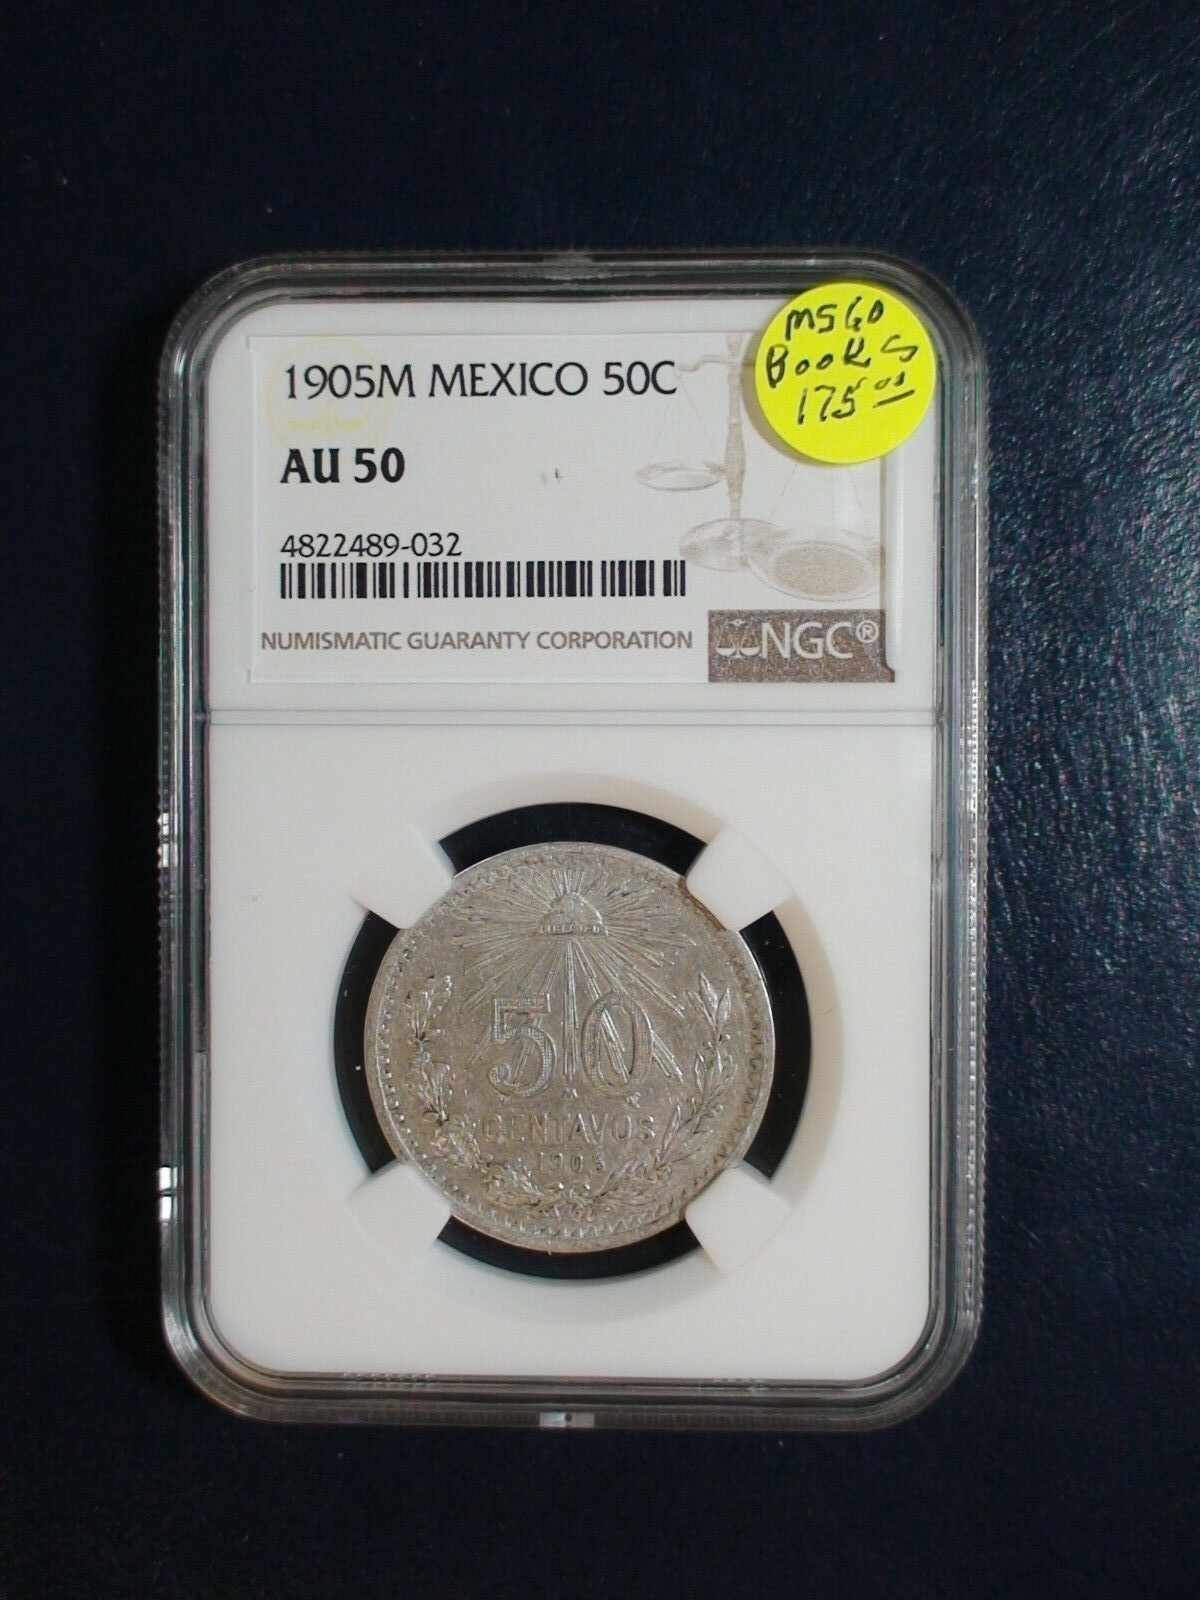 1905 M Mexico Fifty Centavos Ngc Au50 Silver 50c Coin Priced To Sell Now Coin Prices Things To Sell Coins